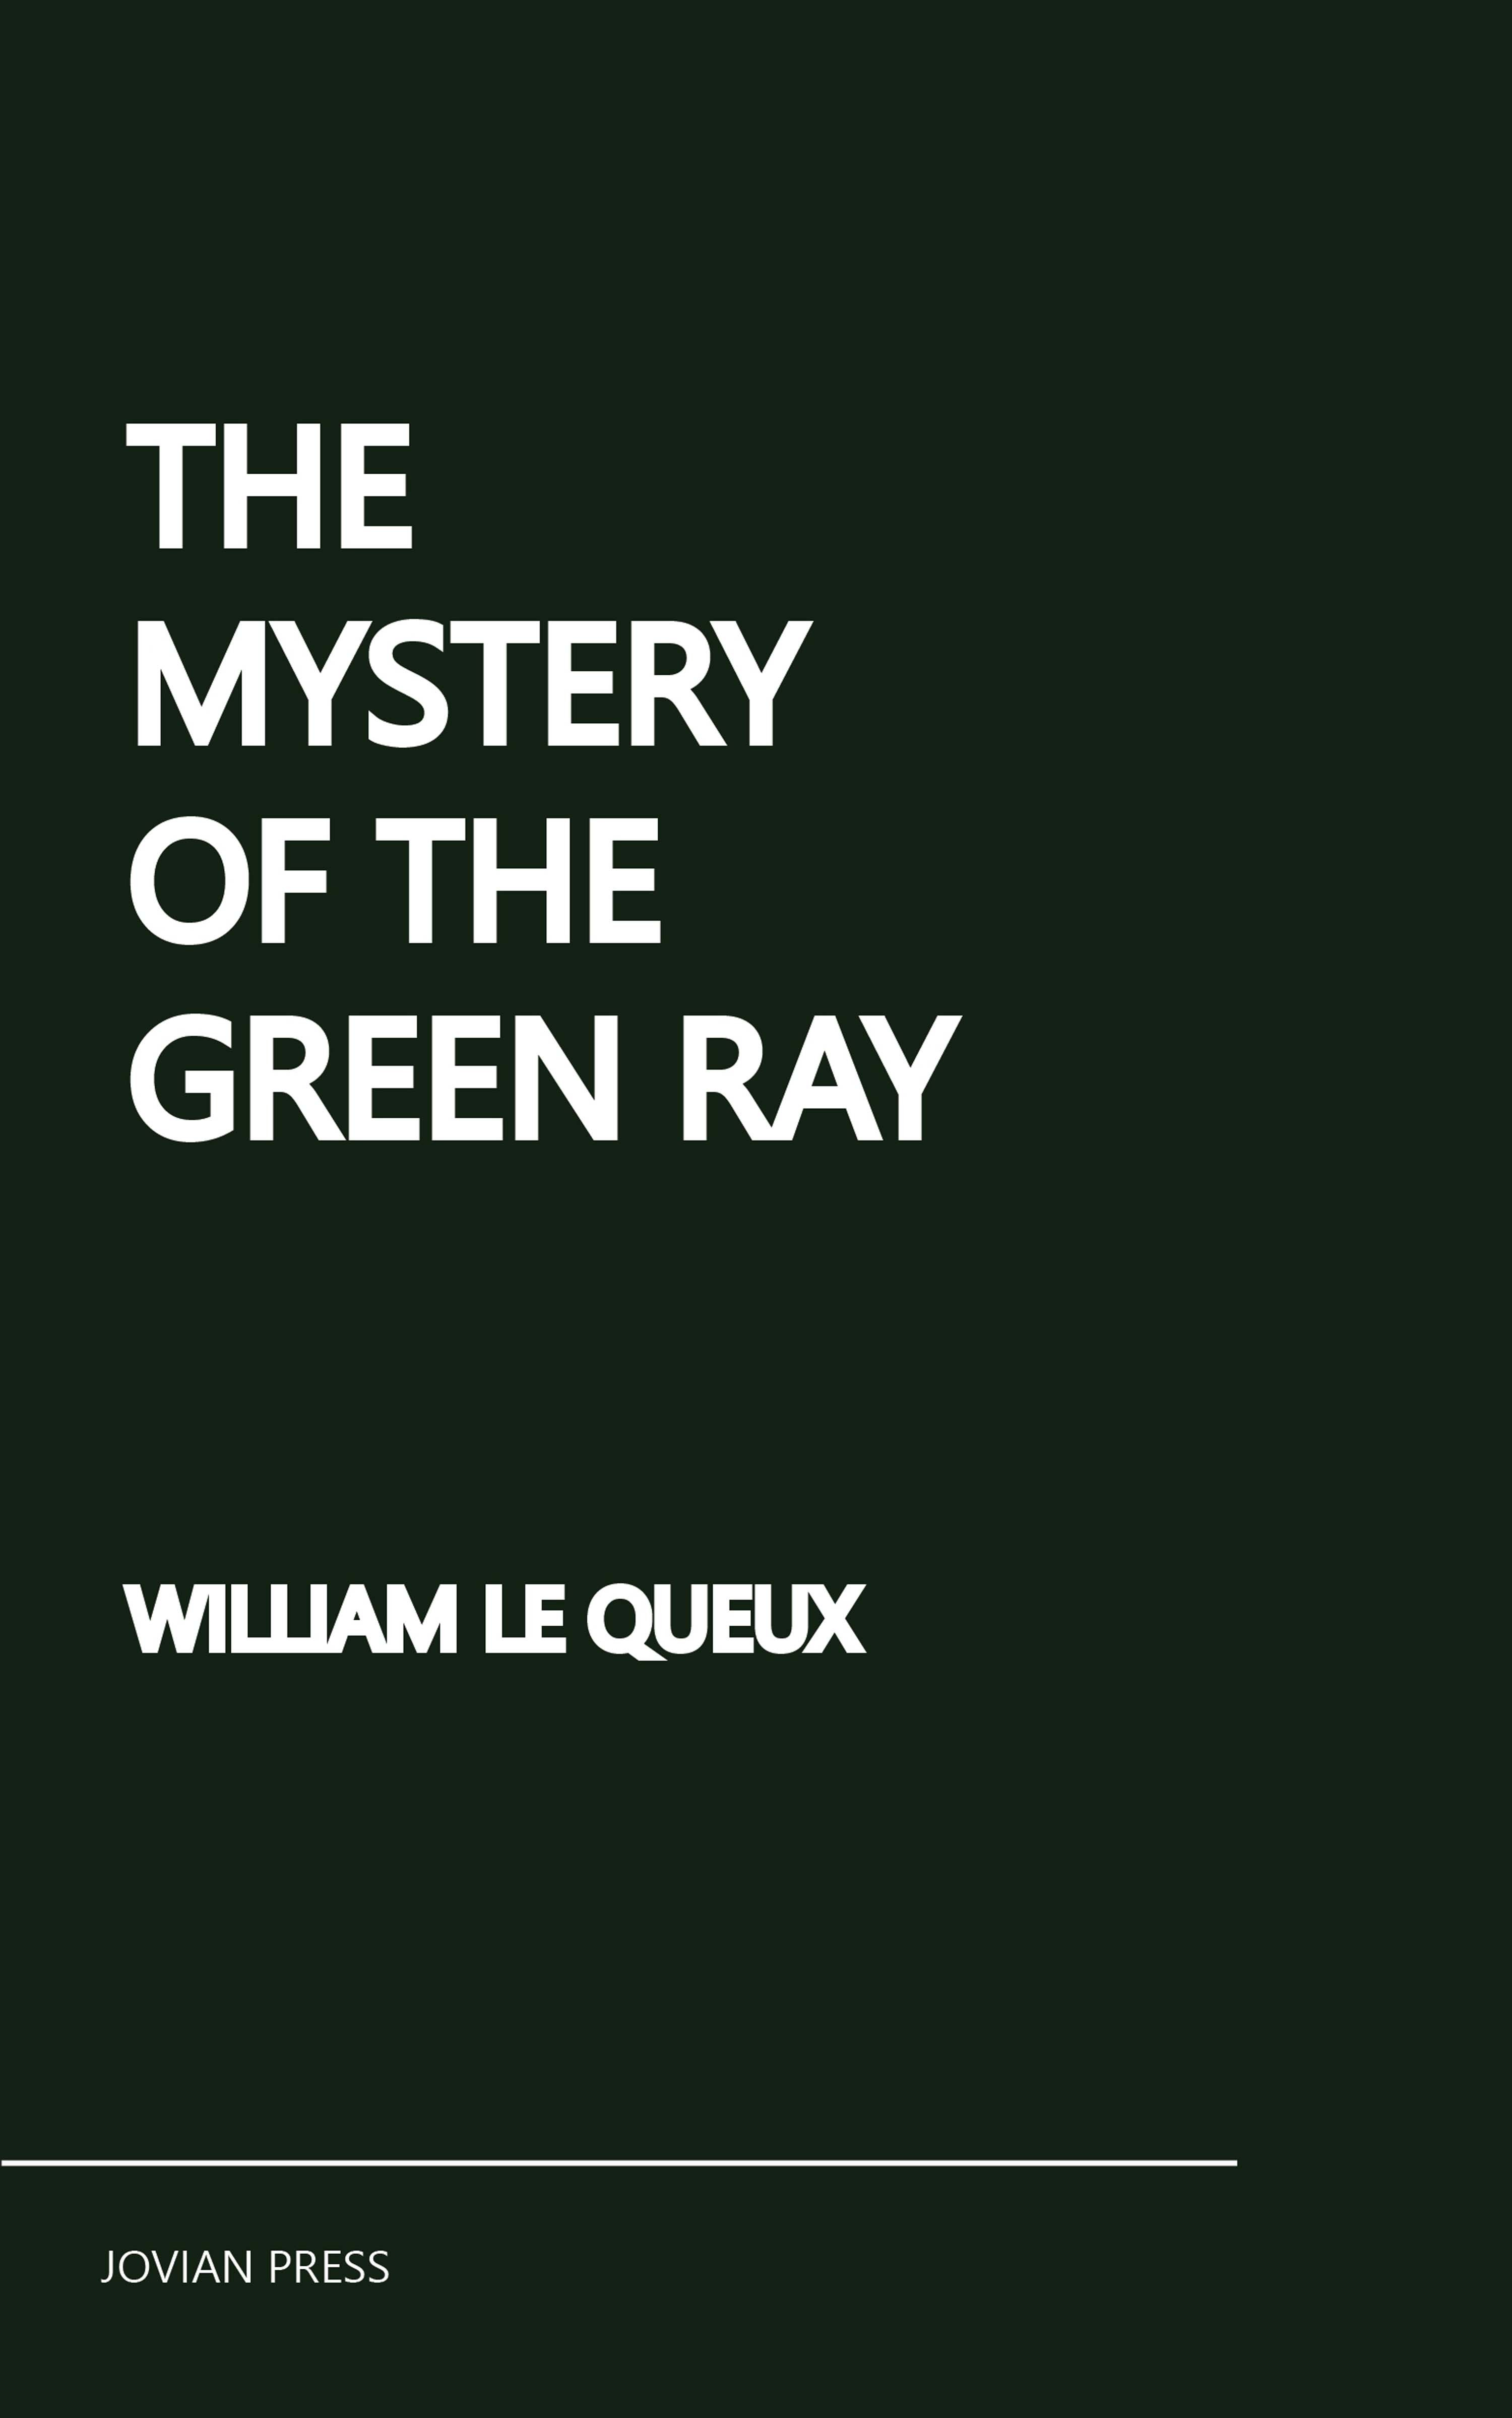 William Le Queux The Mystery of the Green Ray william le queux an eye for an eye british murder mystery